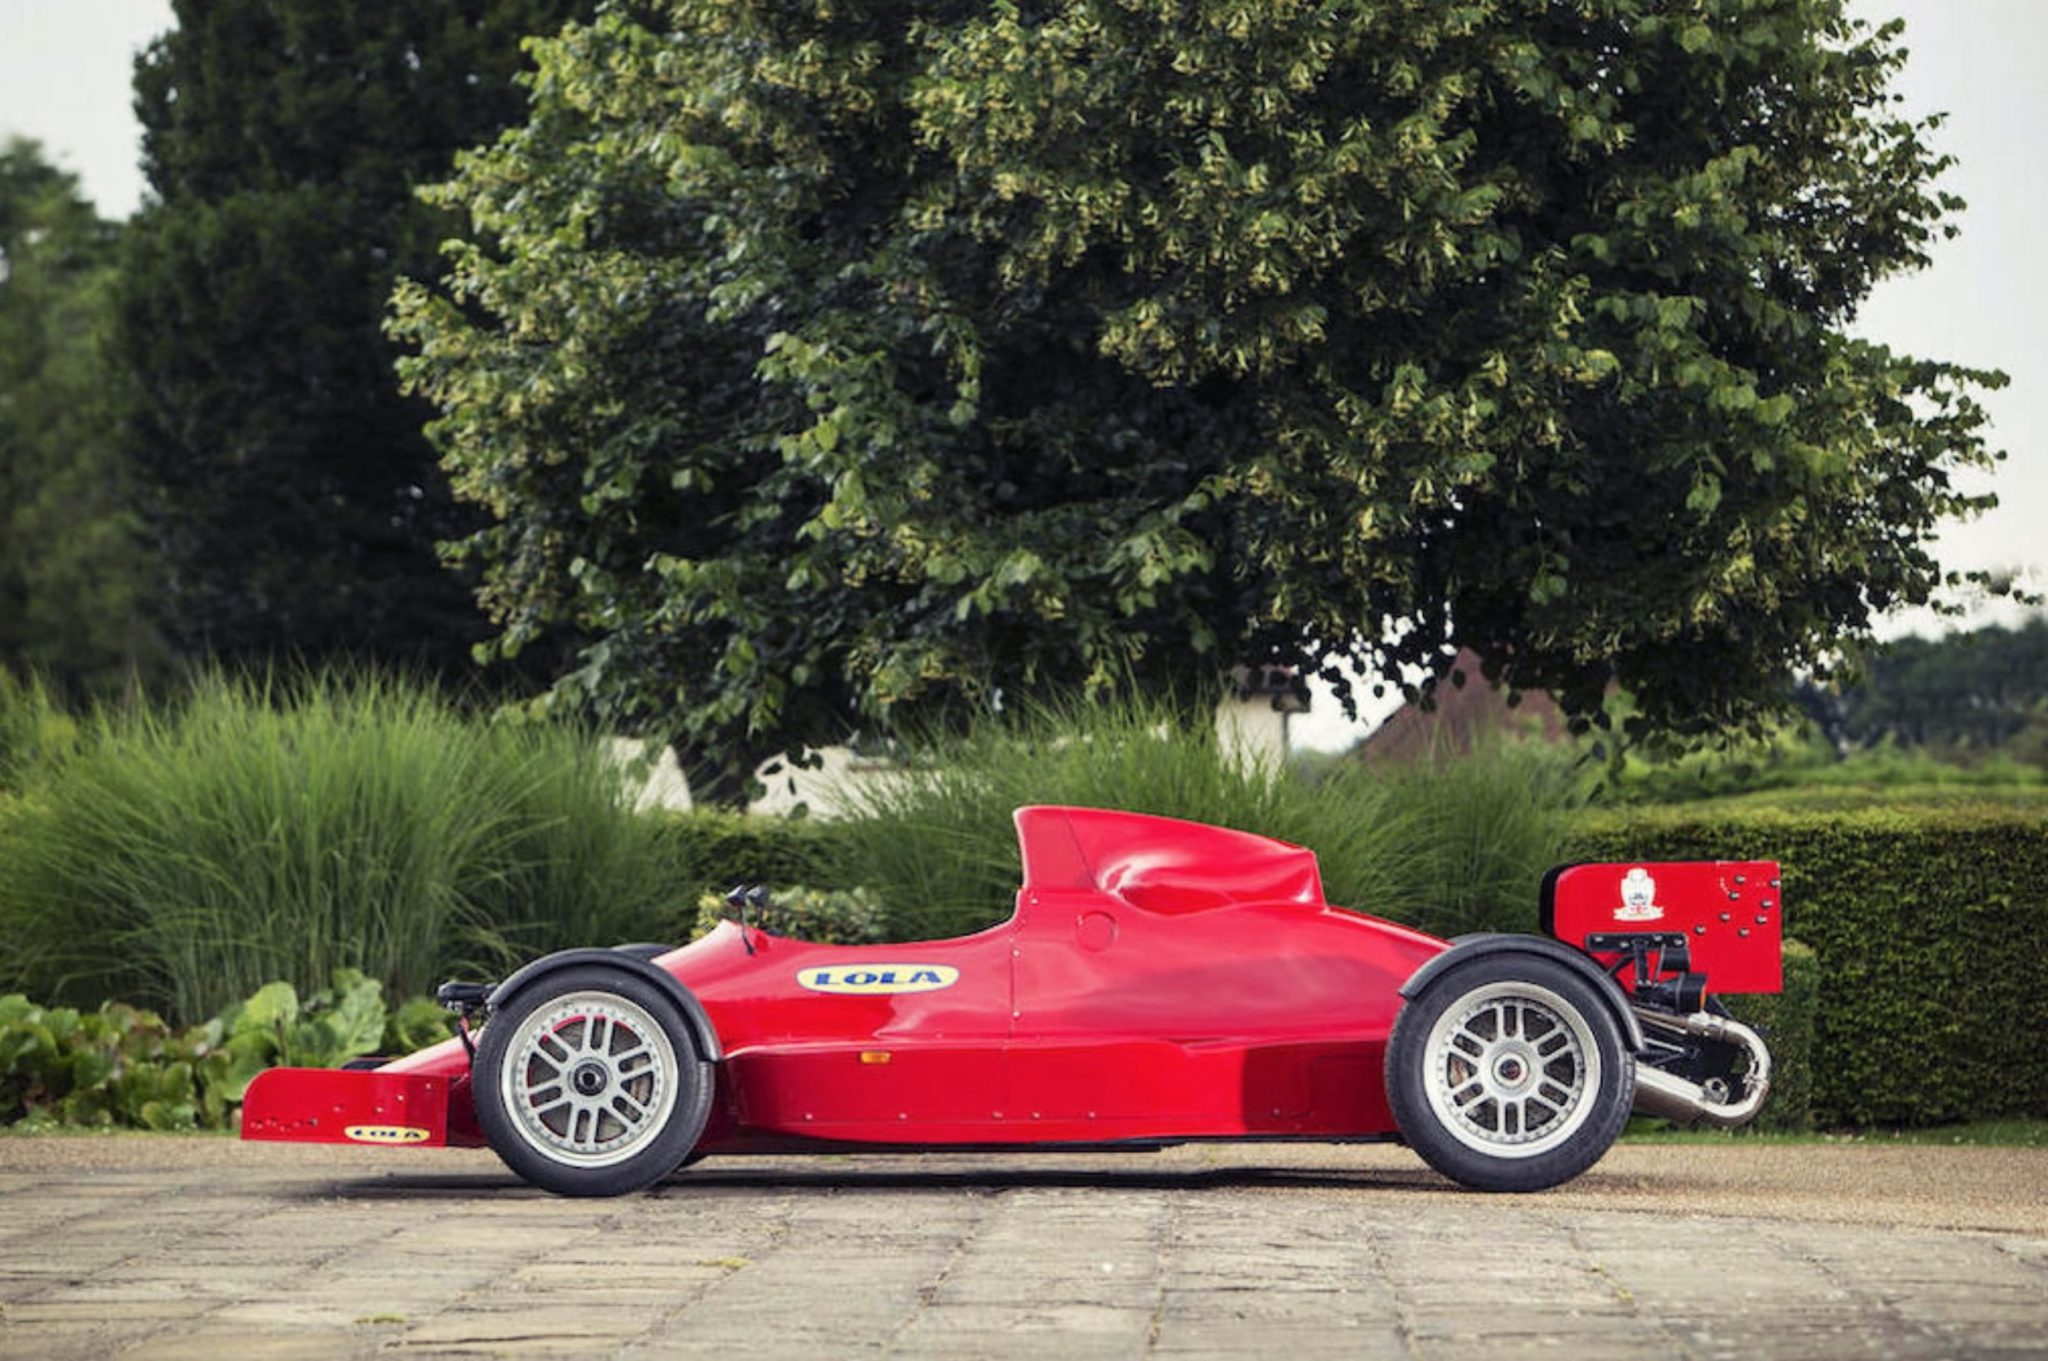 Lola F1R - Road-Legal Formula 1 Car